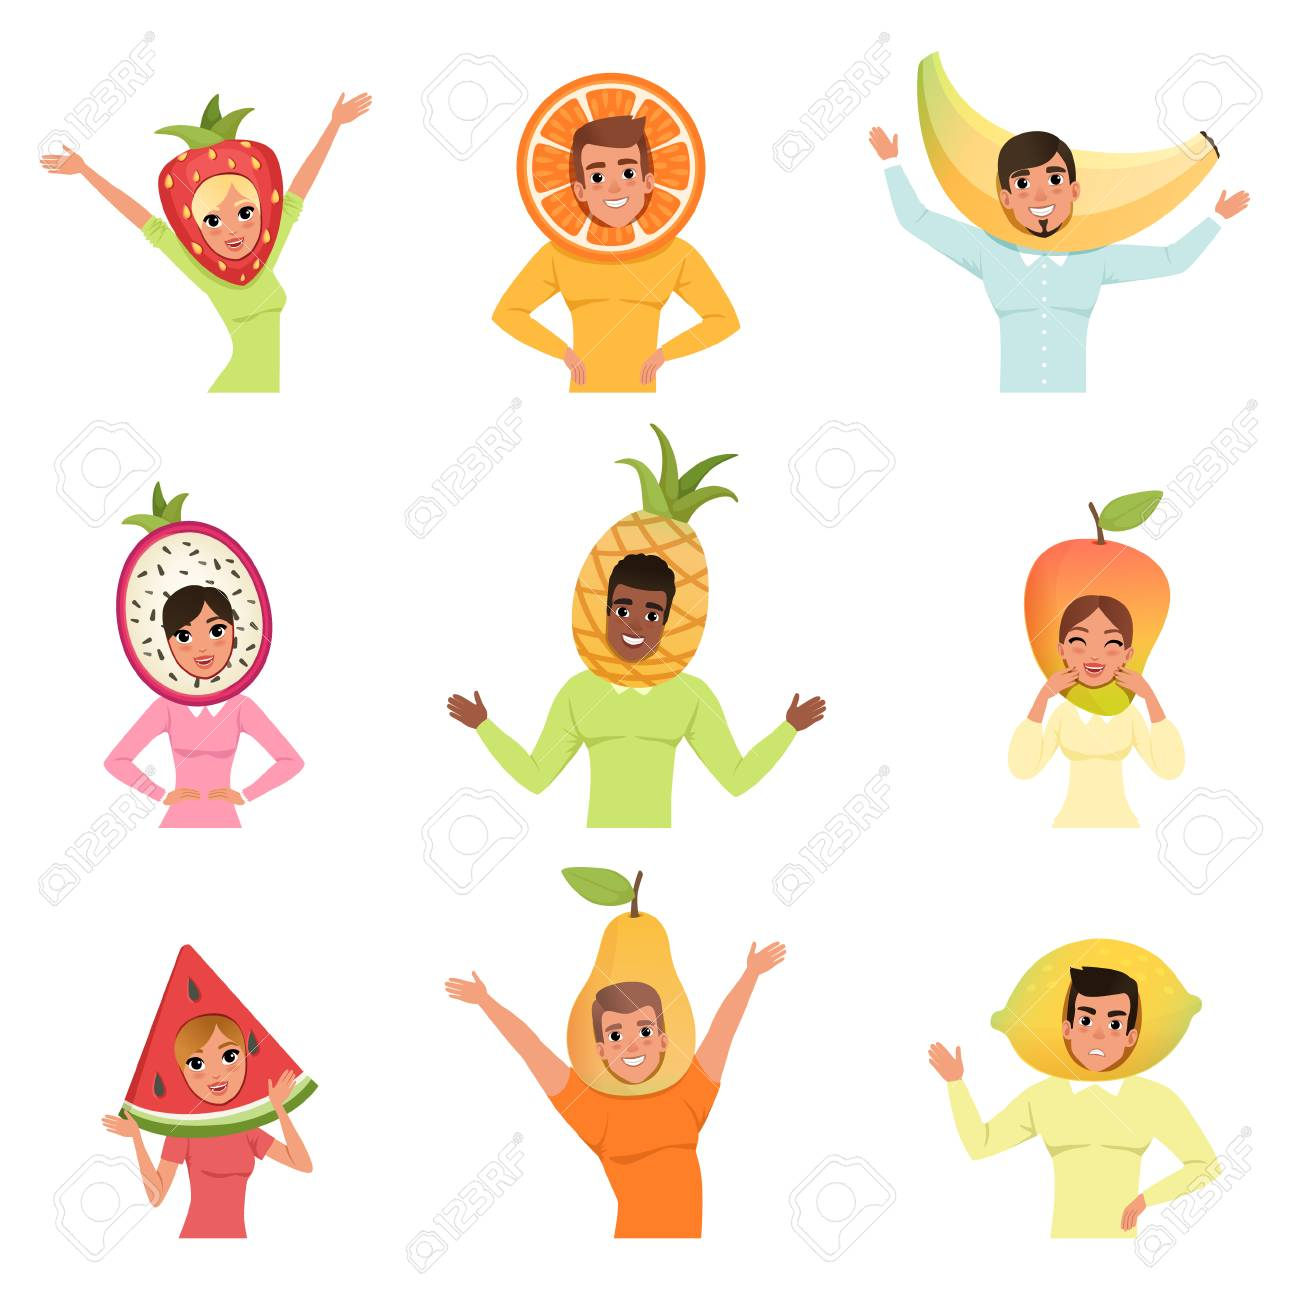 2fd13823d5e64 Isolated flat vector illustration. Collection of men and women wearing  different fruit hats. Strawberry